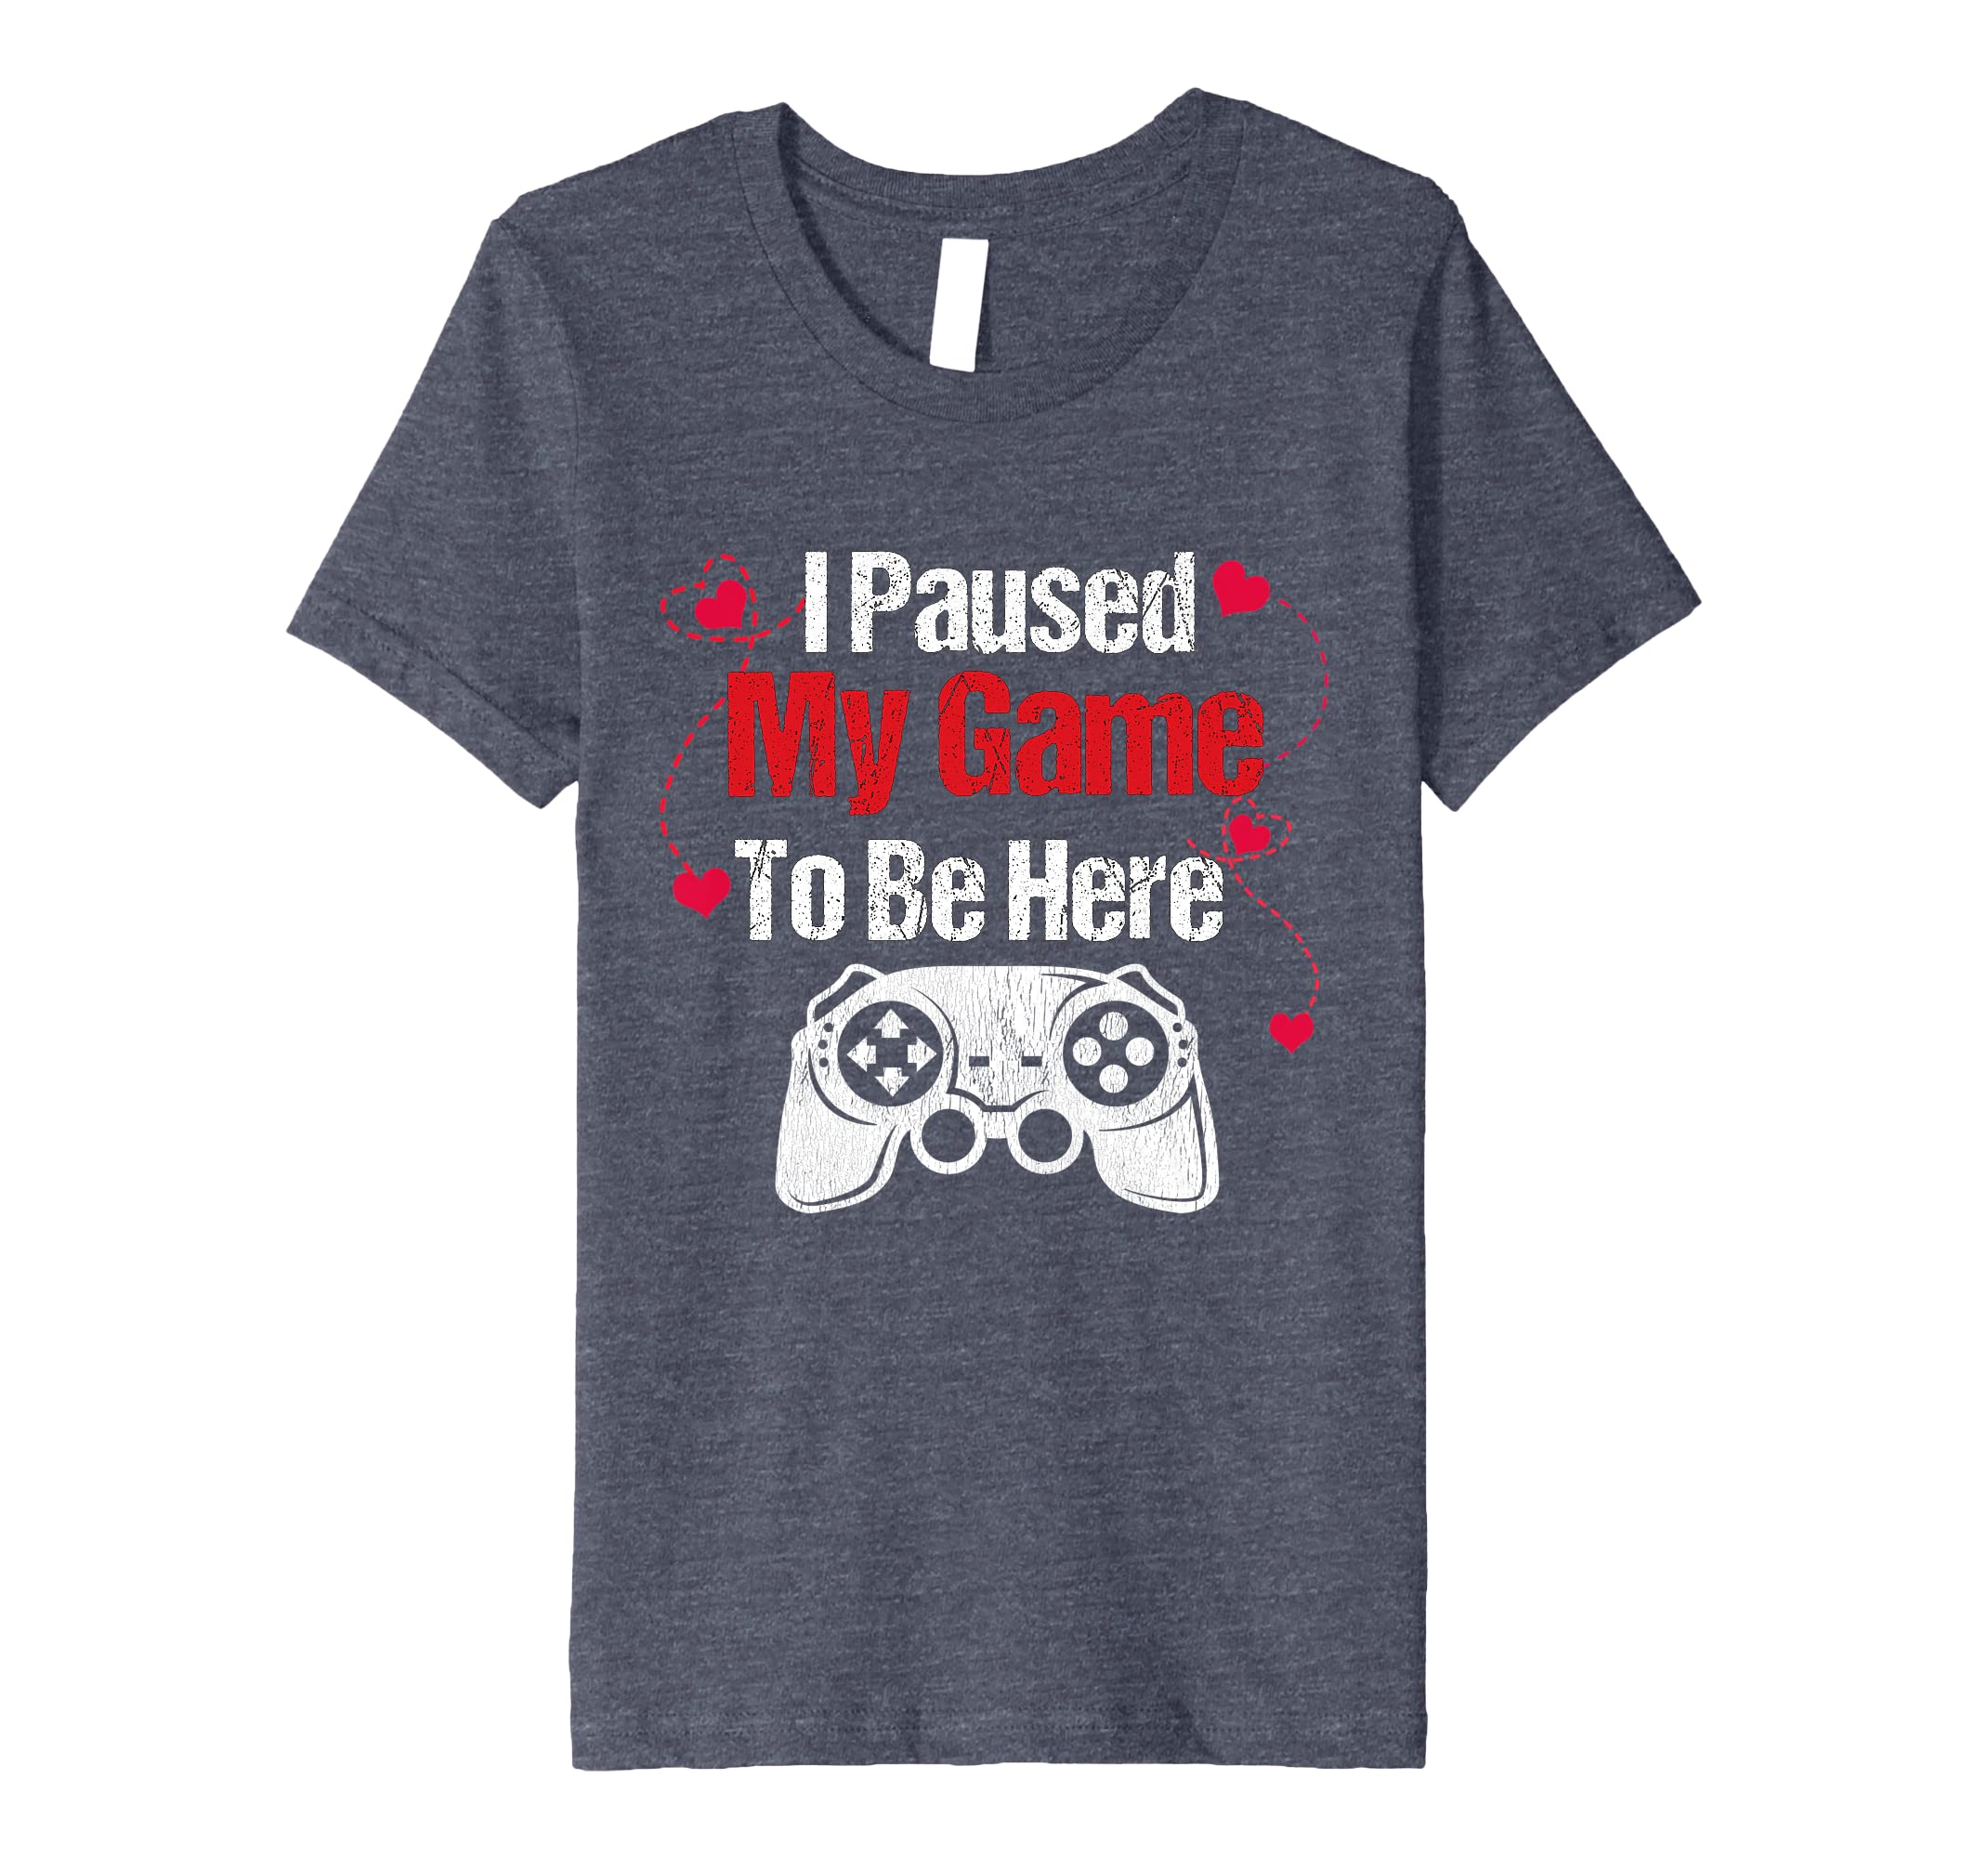 5386e8acde936 Amazon.com: I Paused My Game To Be Here Girls Valentine T- Shirt ...